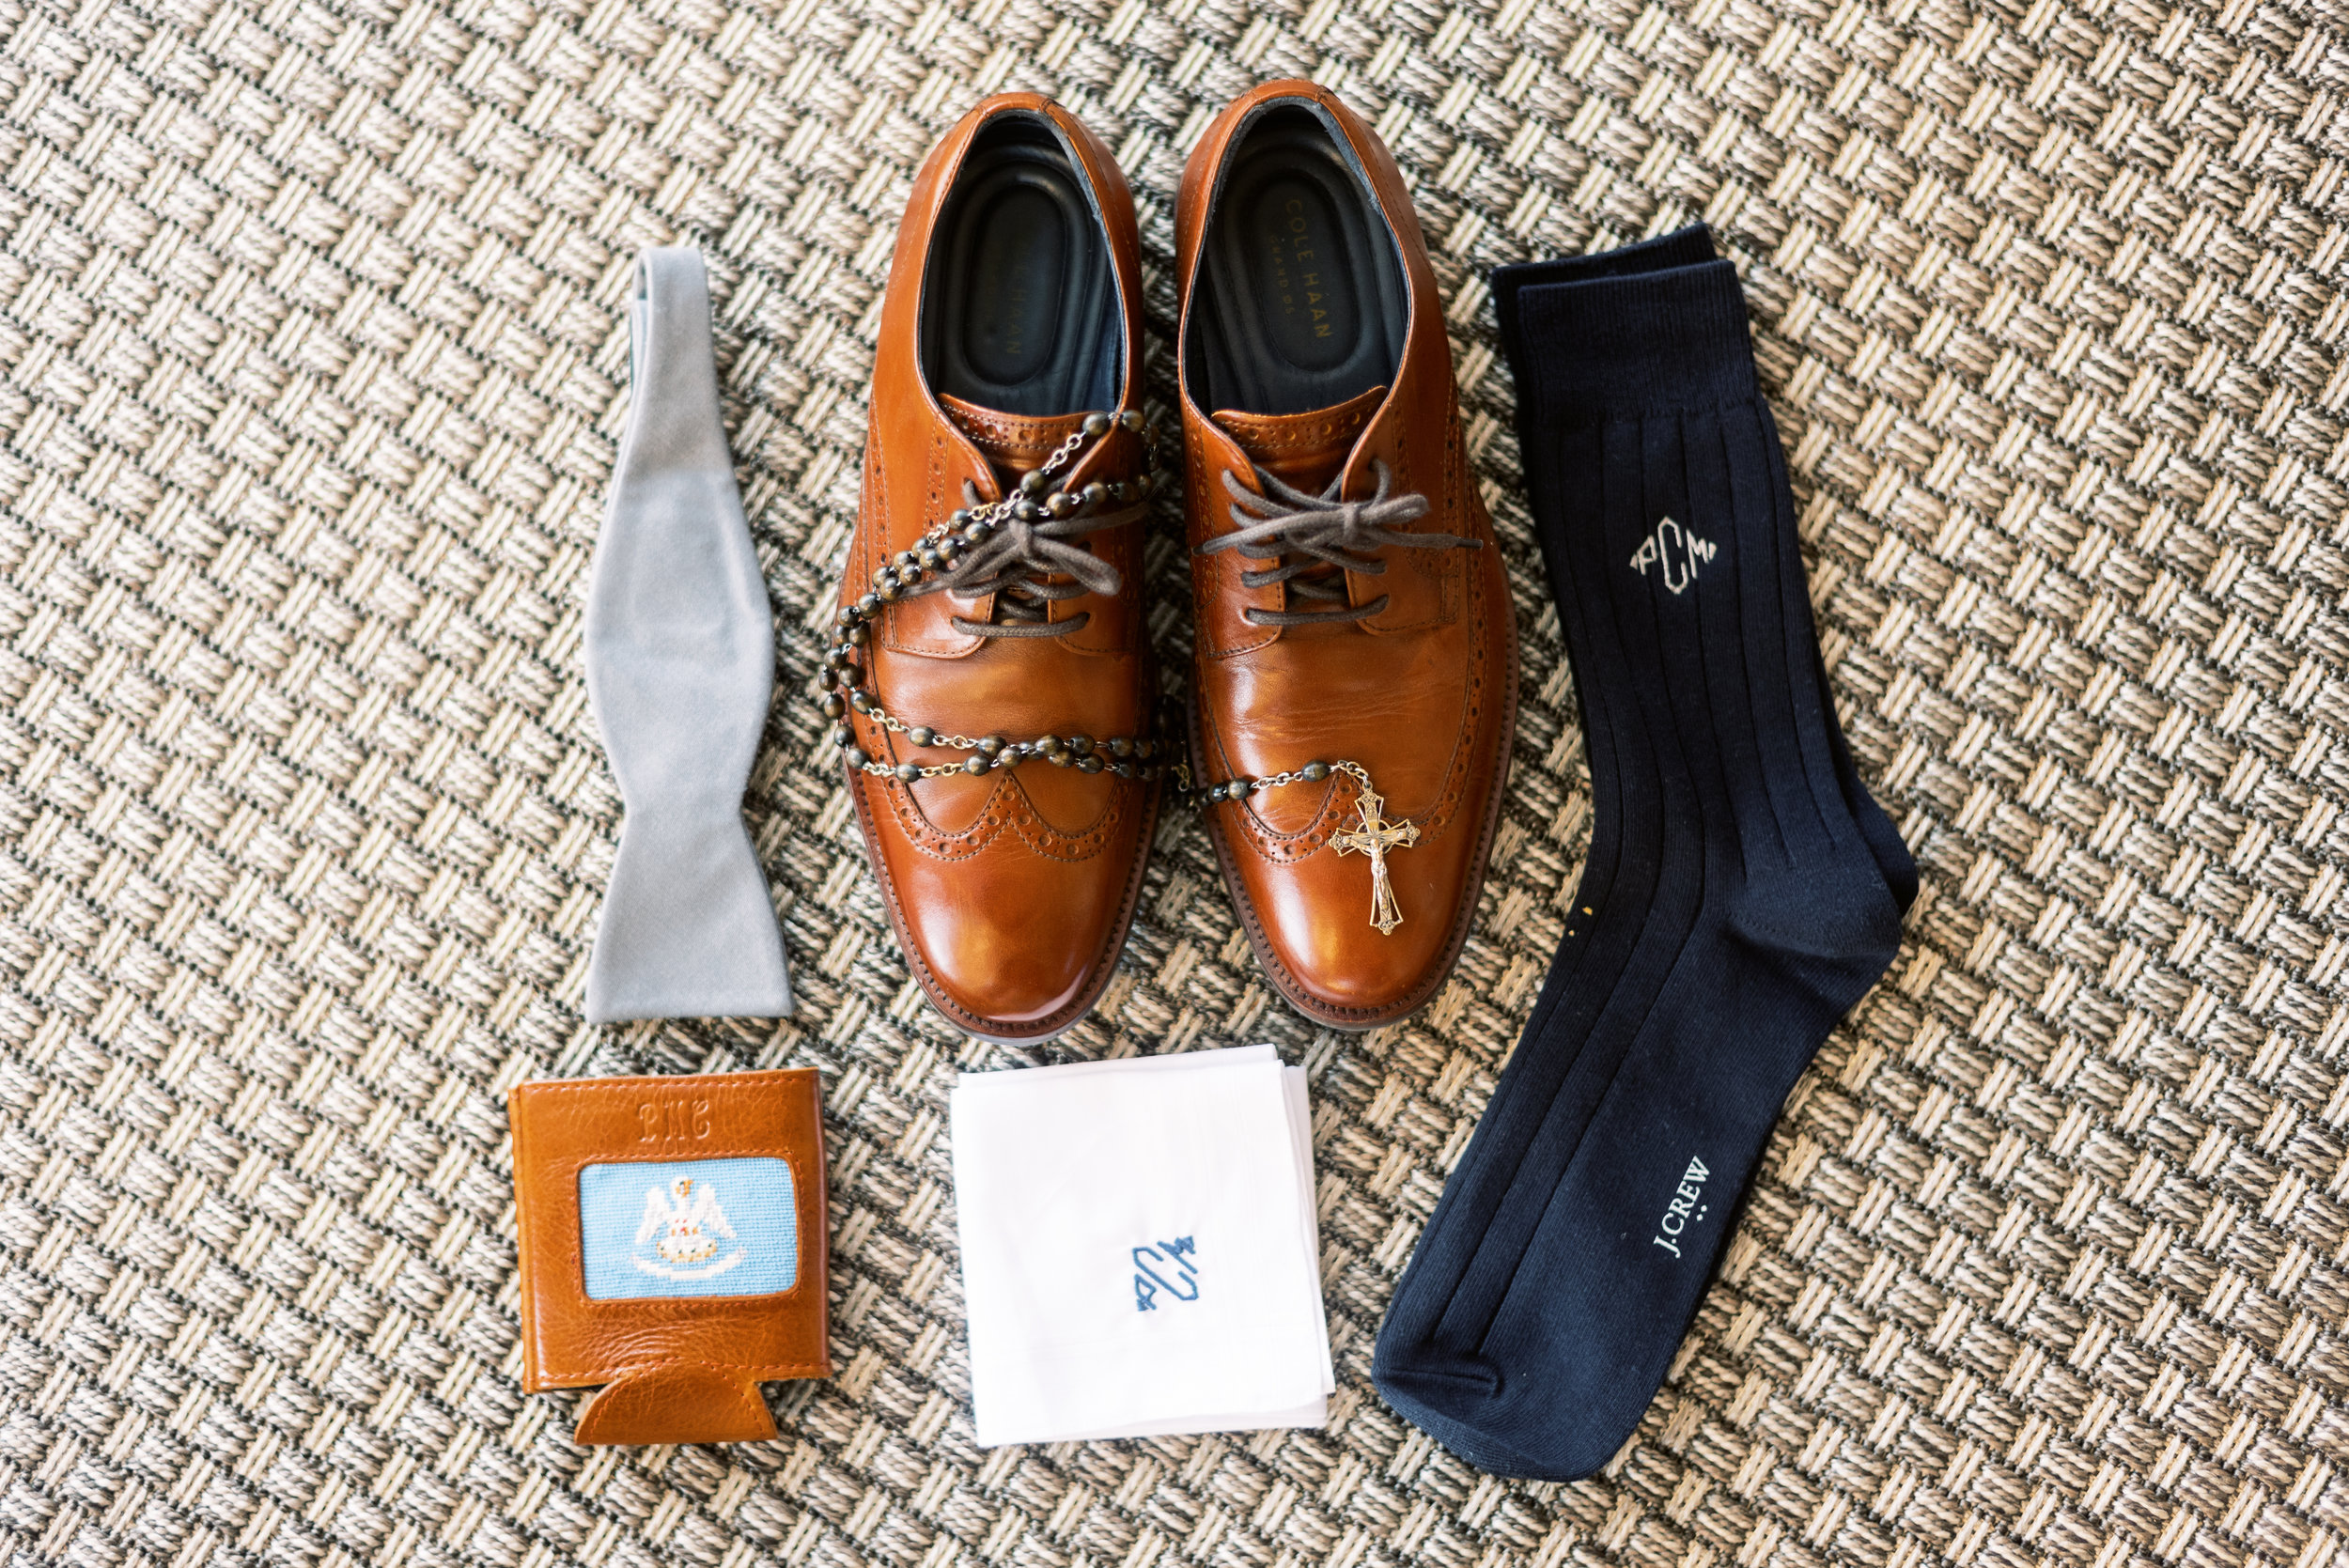 Southern Fete, Southern Wedding, Groom's shoes, Groom's socks, Groom's tie, Sarah Beth Photography